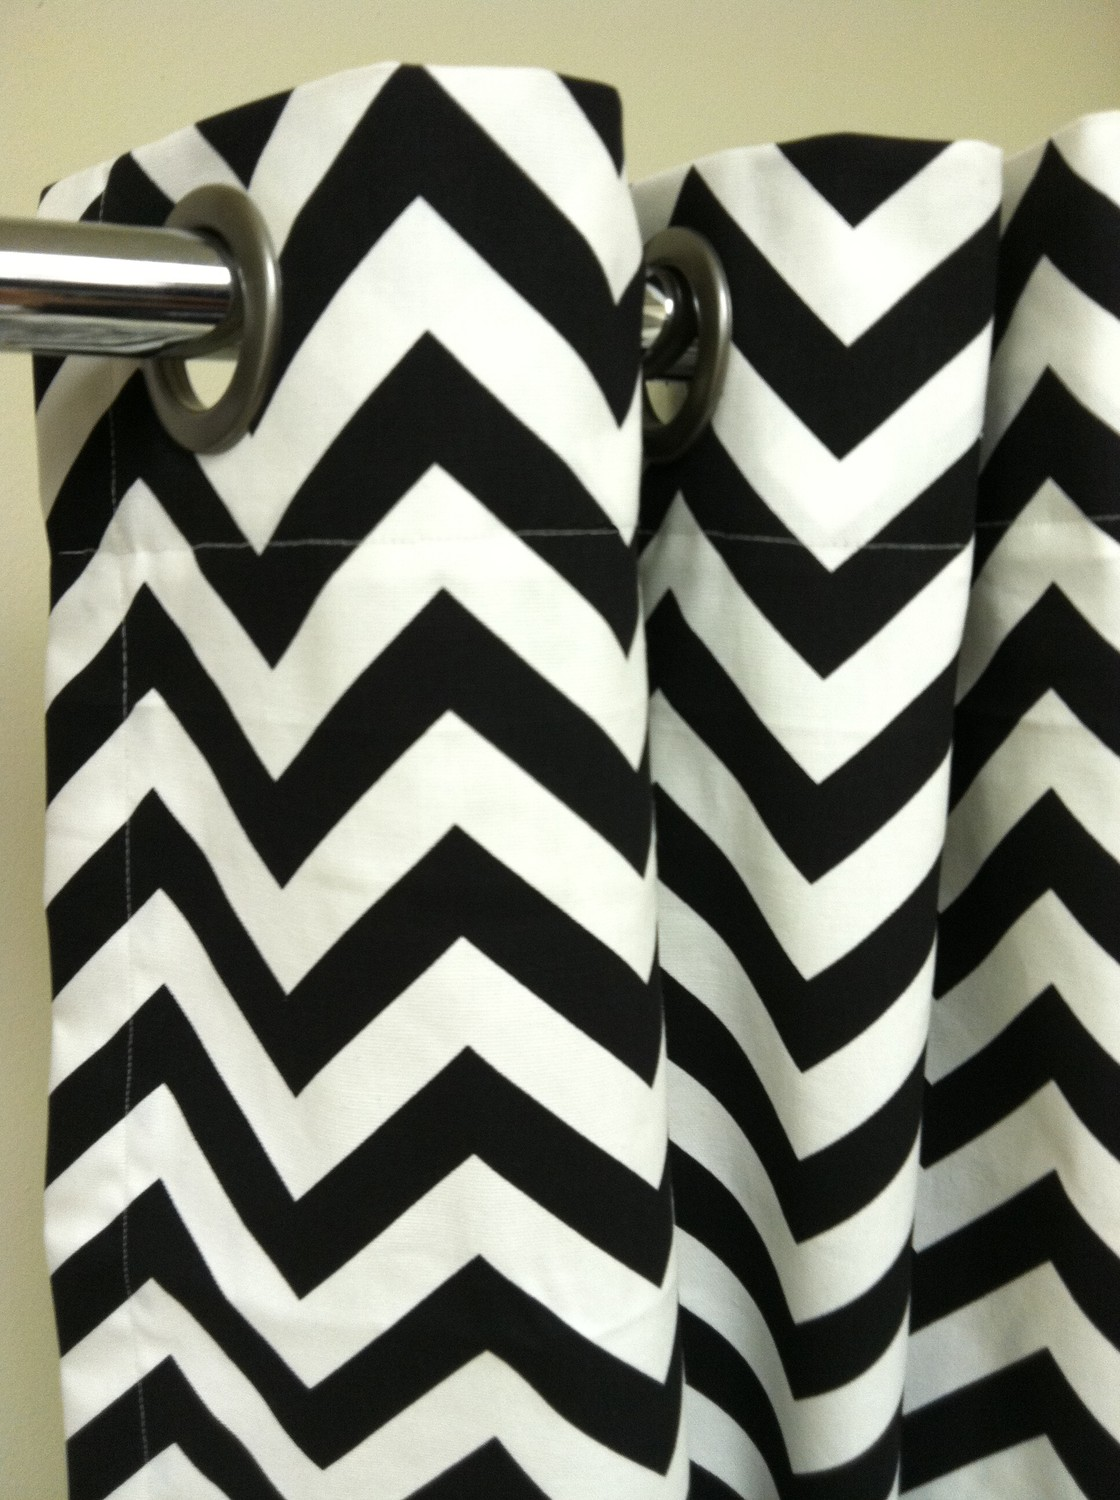 Shower Stall chevron Curtains in black and white with stainless steel finial